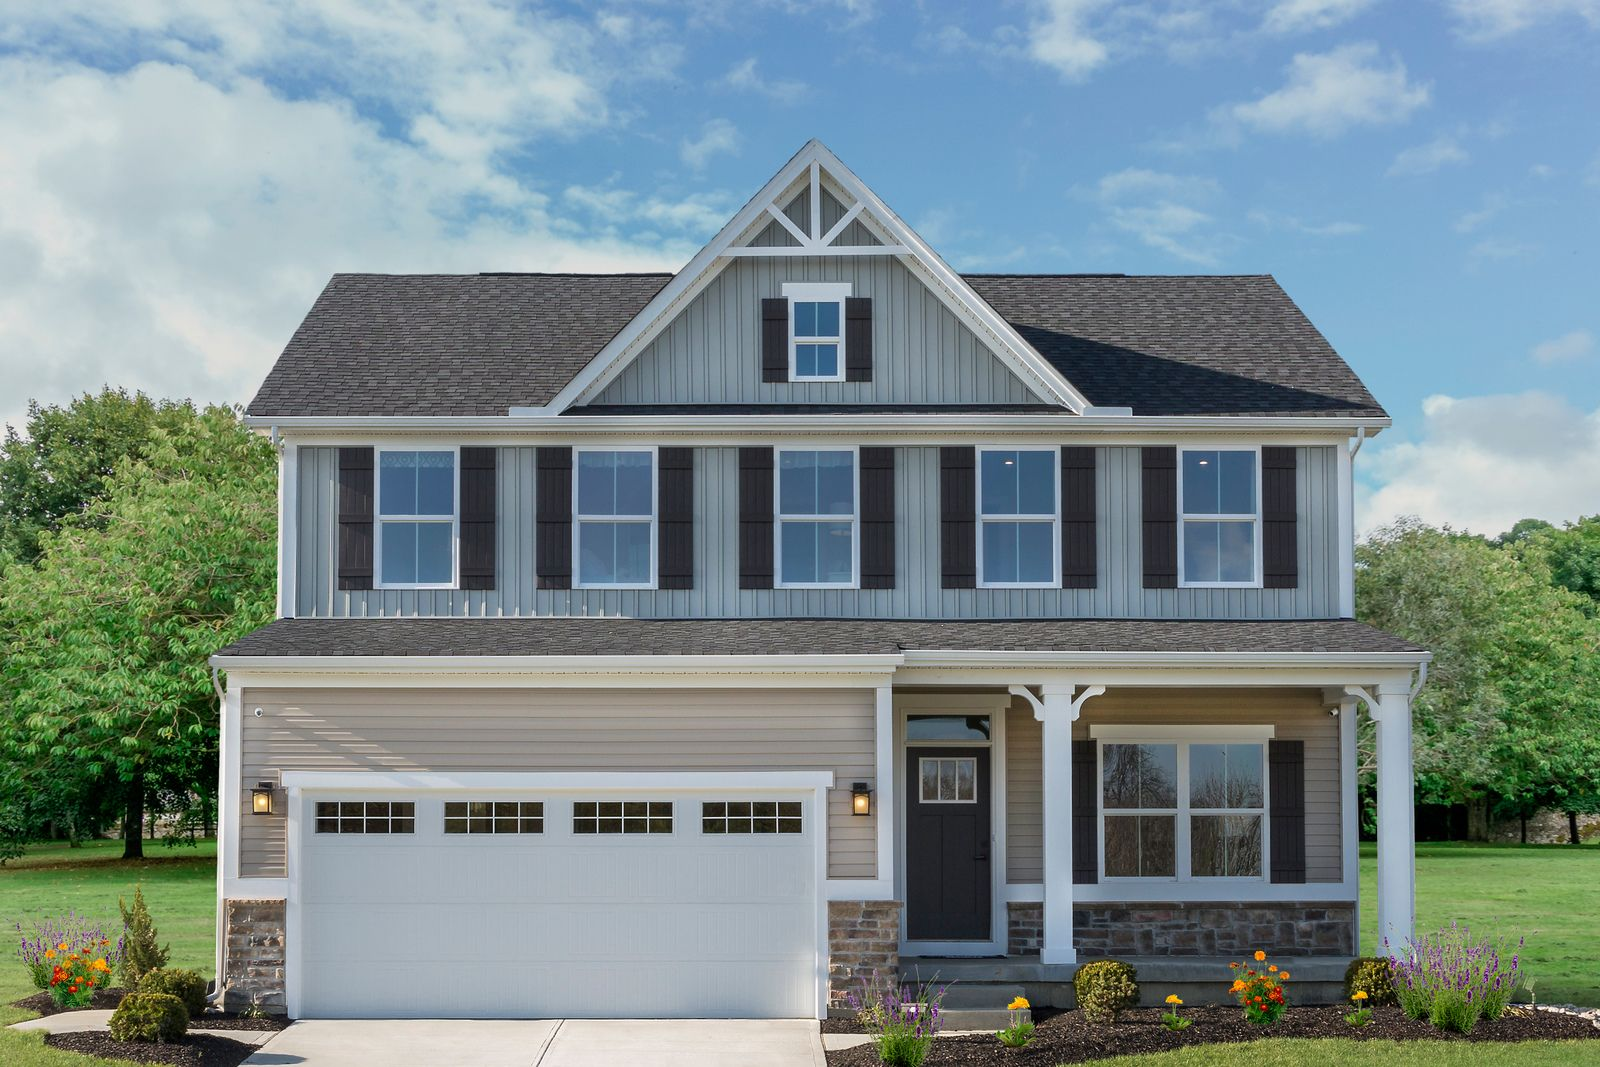 Welcome to Chapman Fields!:Limited homesites remain!Join our VIP list to have the first opportunity to purchase before this communitysells out!